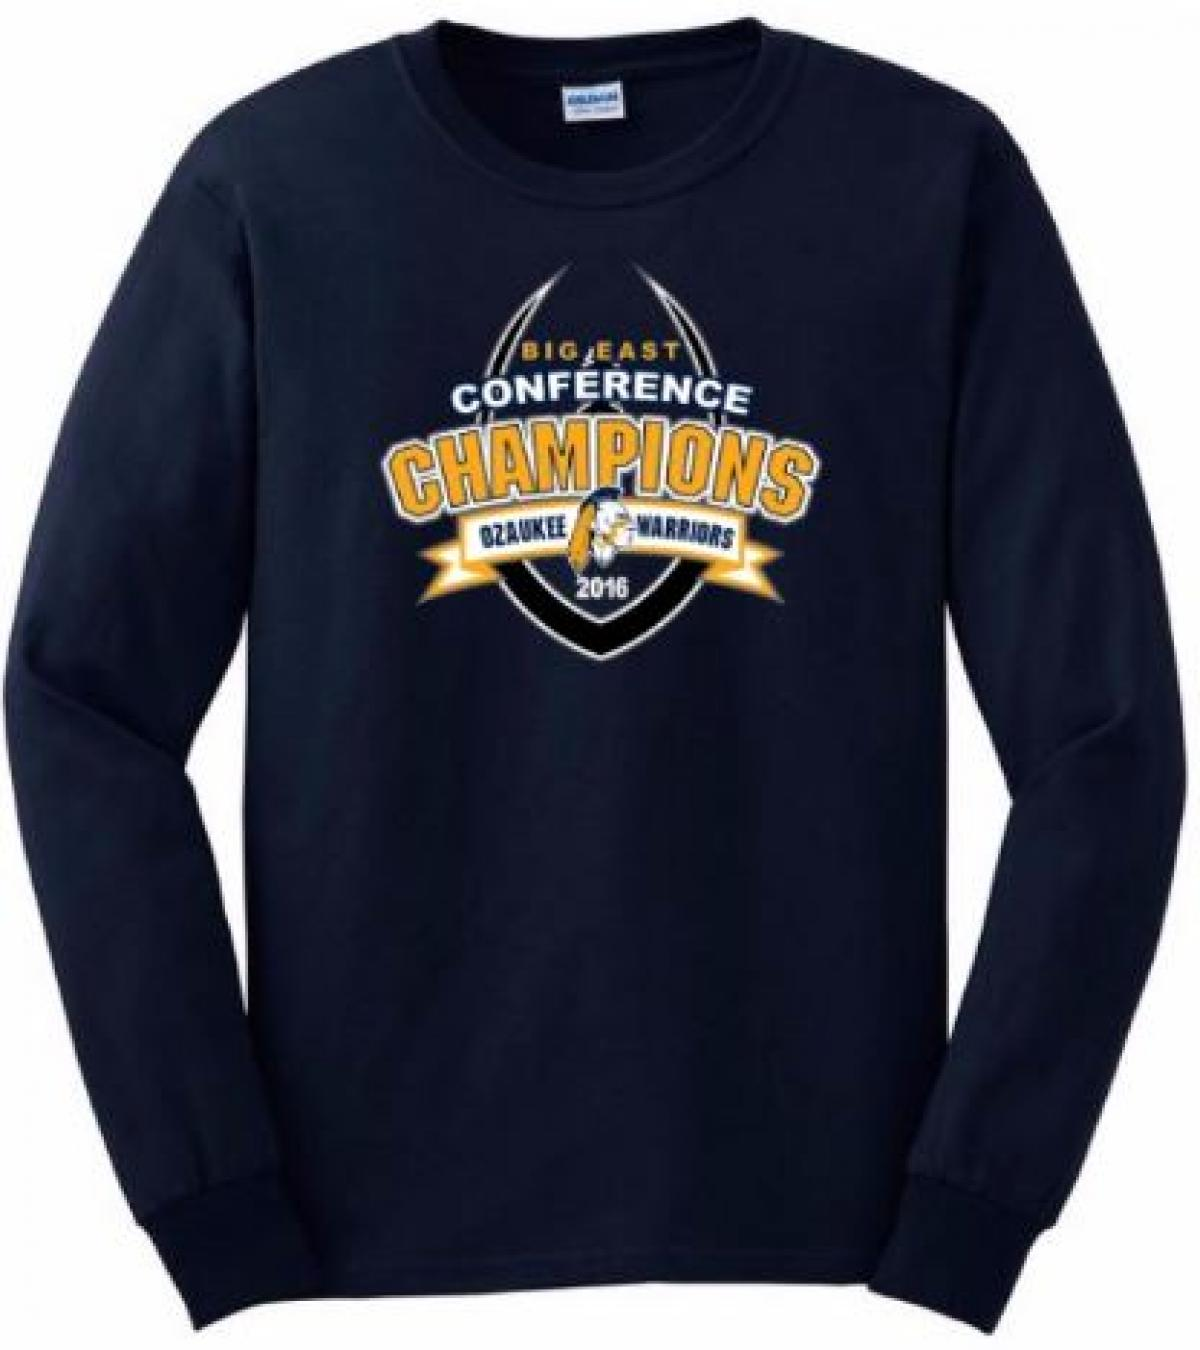 Order Conference Championship Gear by midnight Dec 1st